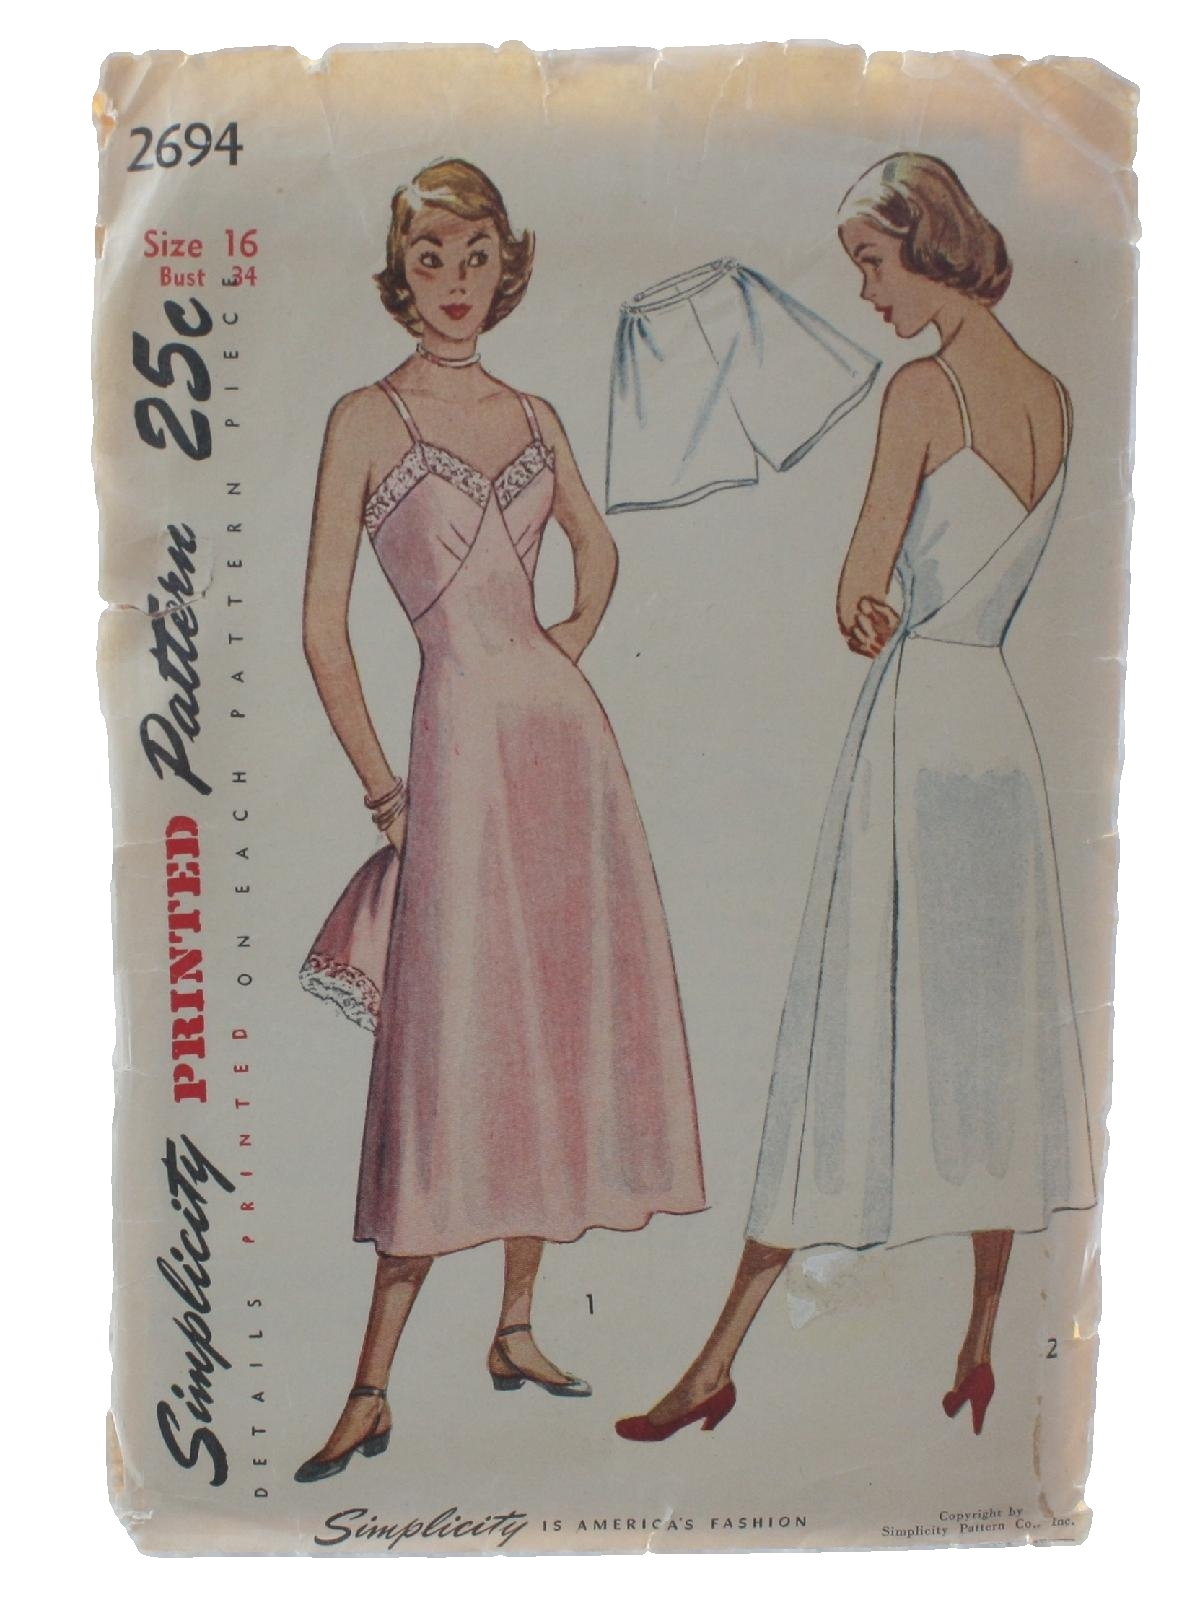 7a86e2071c175 Forties Sewing Pattern: 40s -Simplicity Pattern No. 2694- Ladies ...